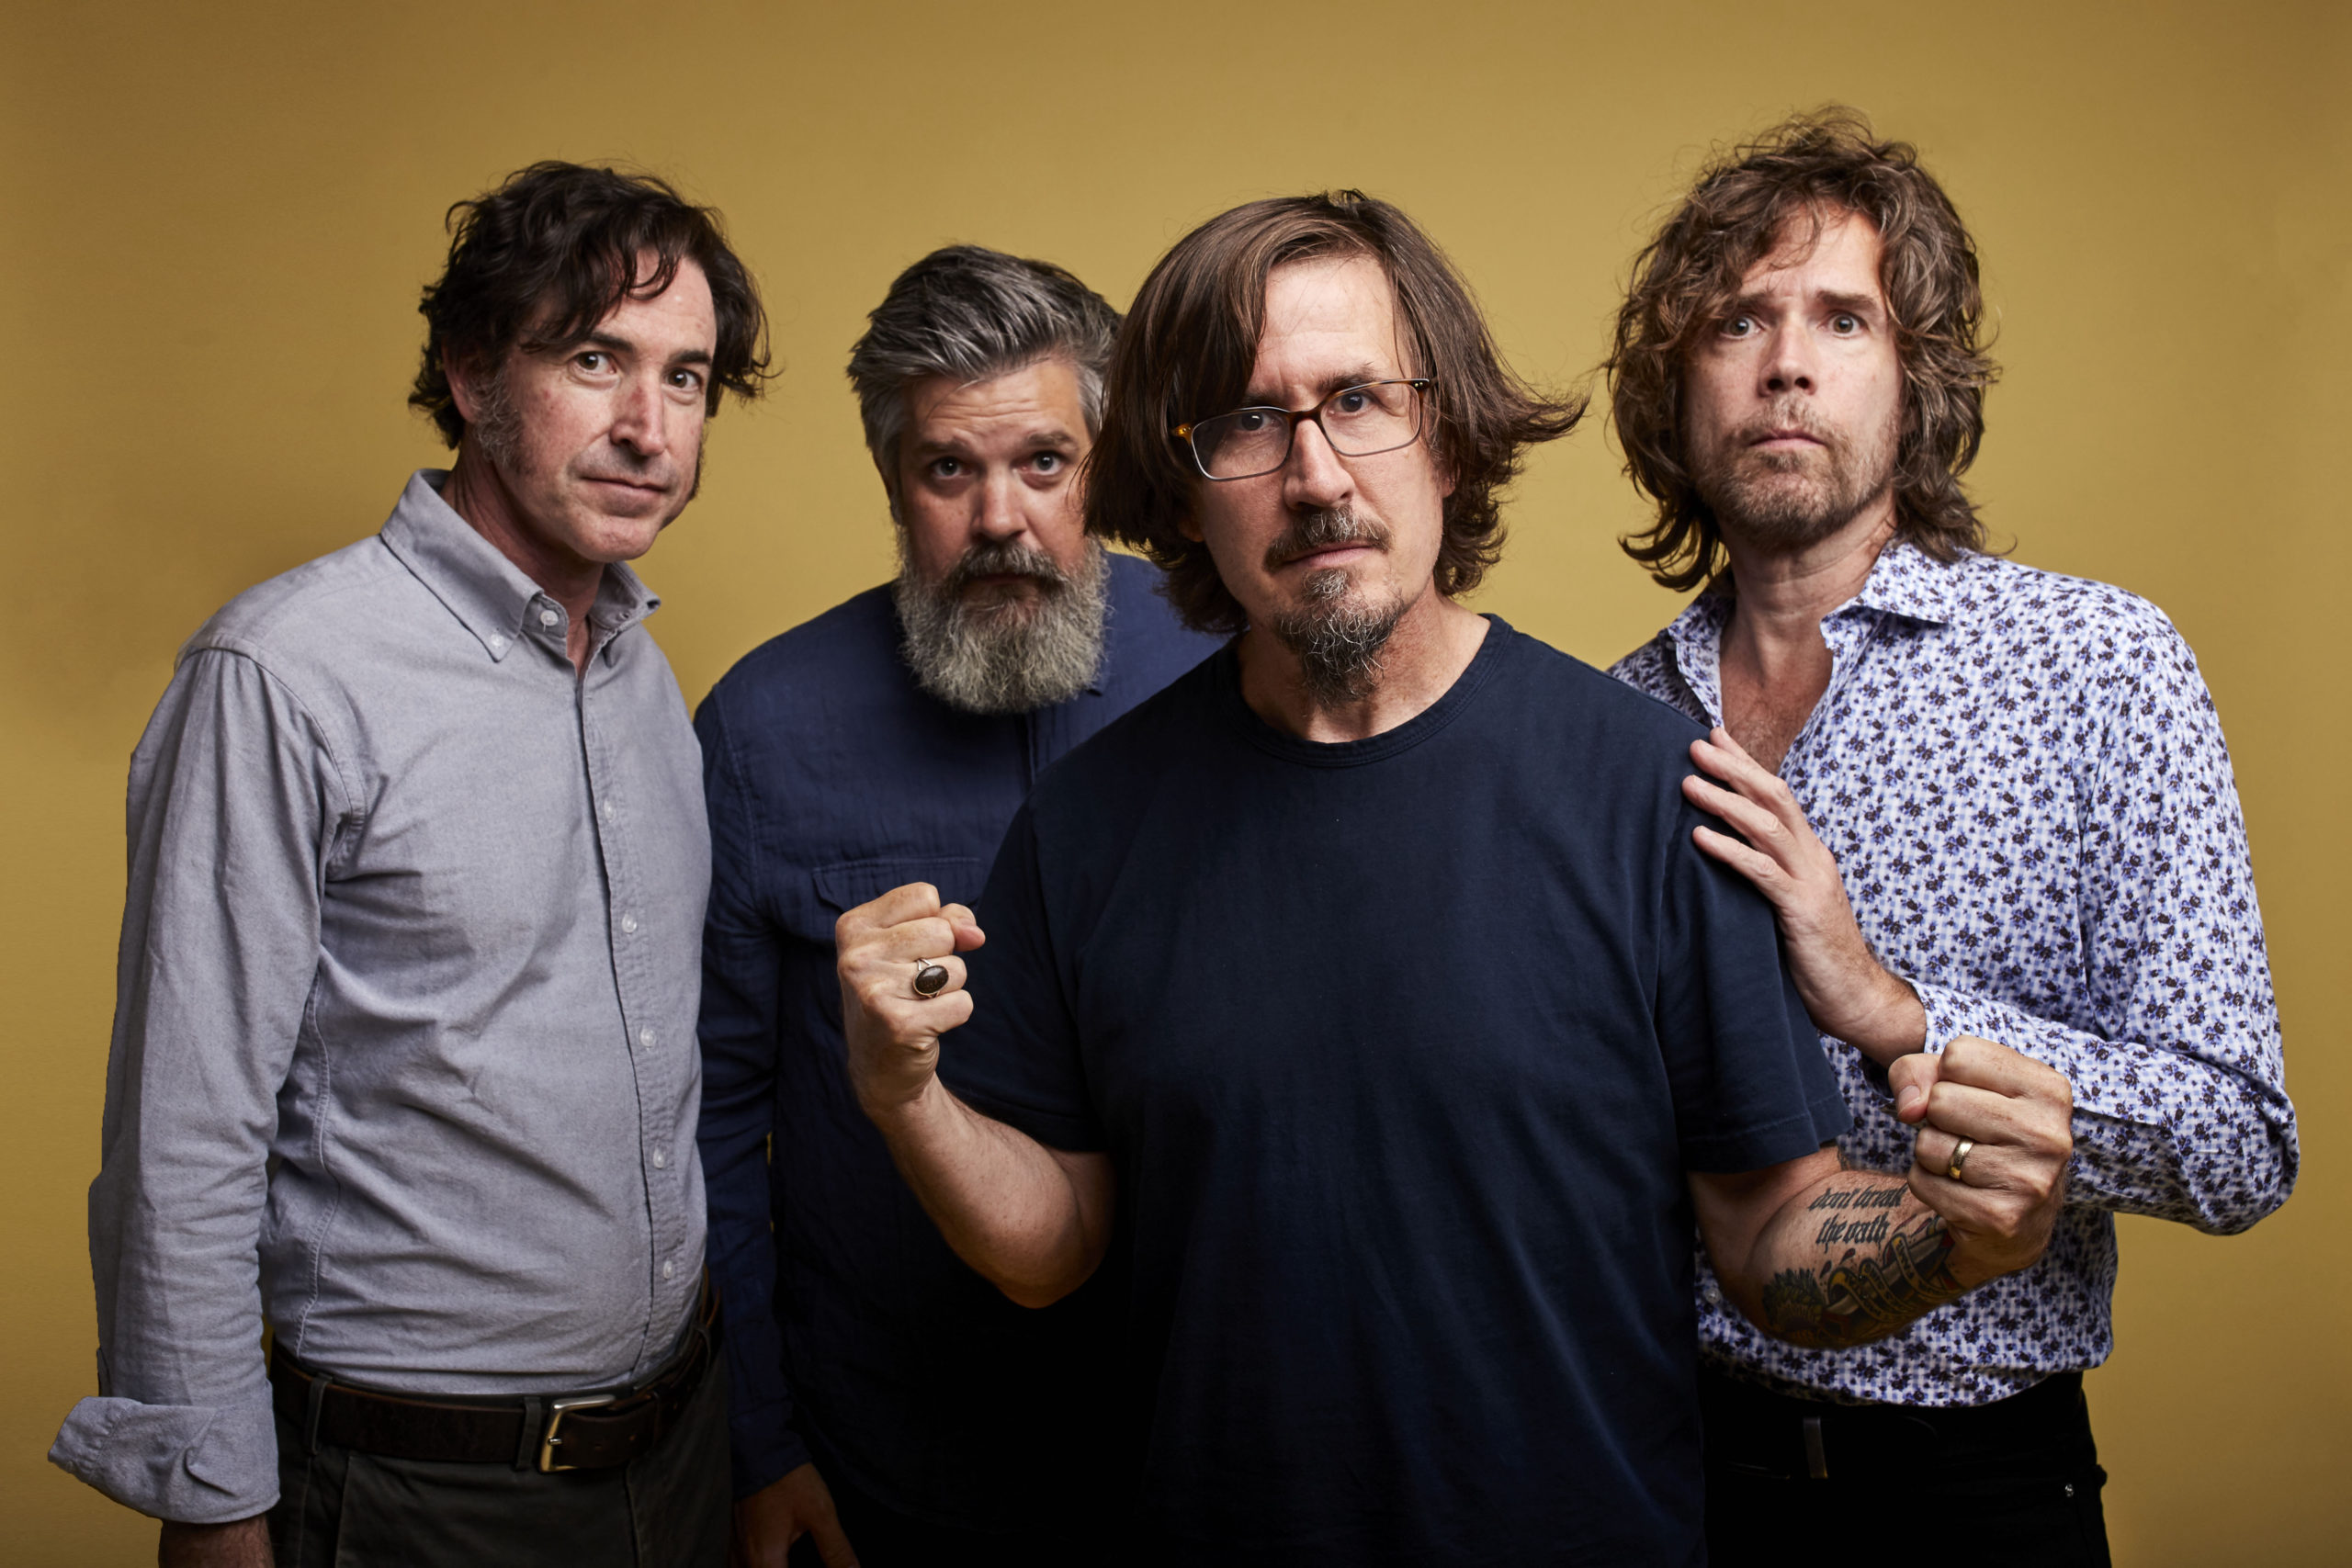 John Darnielle on The Mountain Goats, Muscle Shoals and Magic: The Gathering